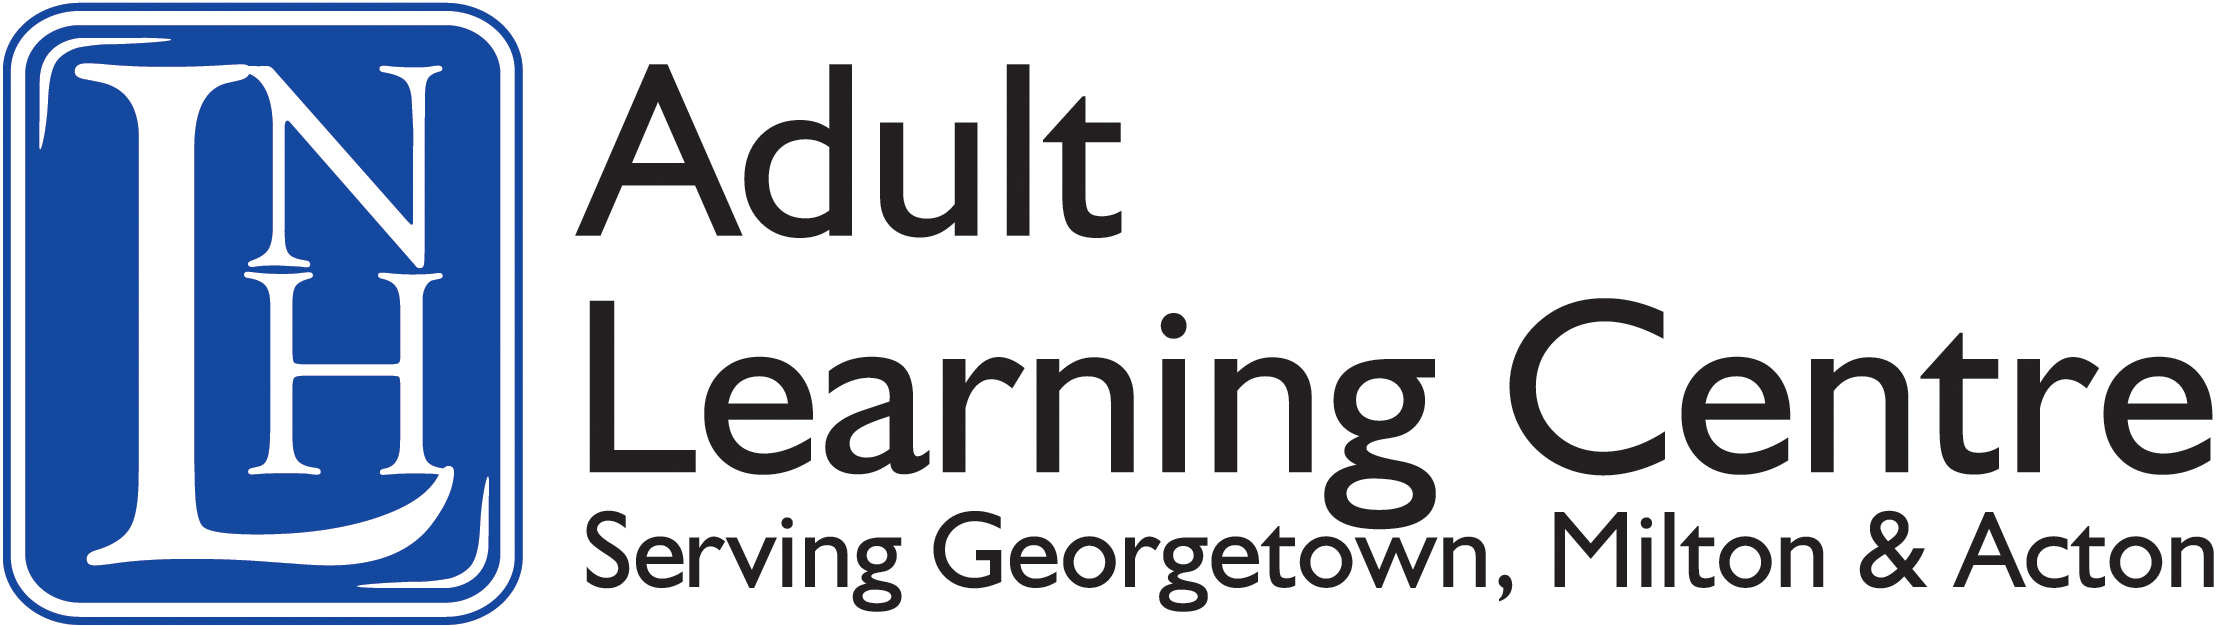 Adult Learning Centre logo